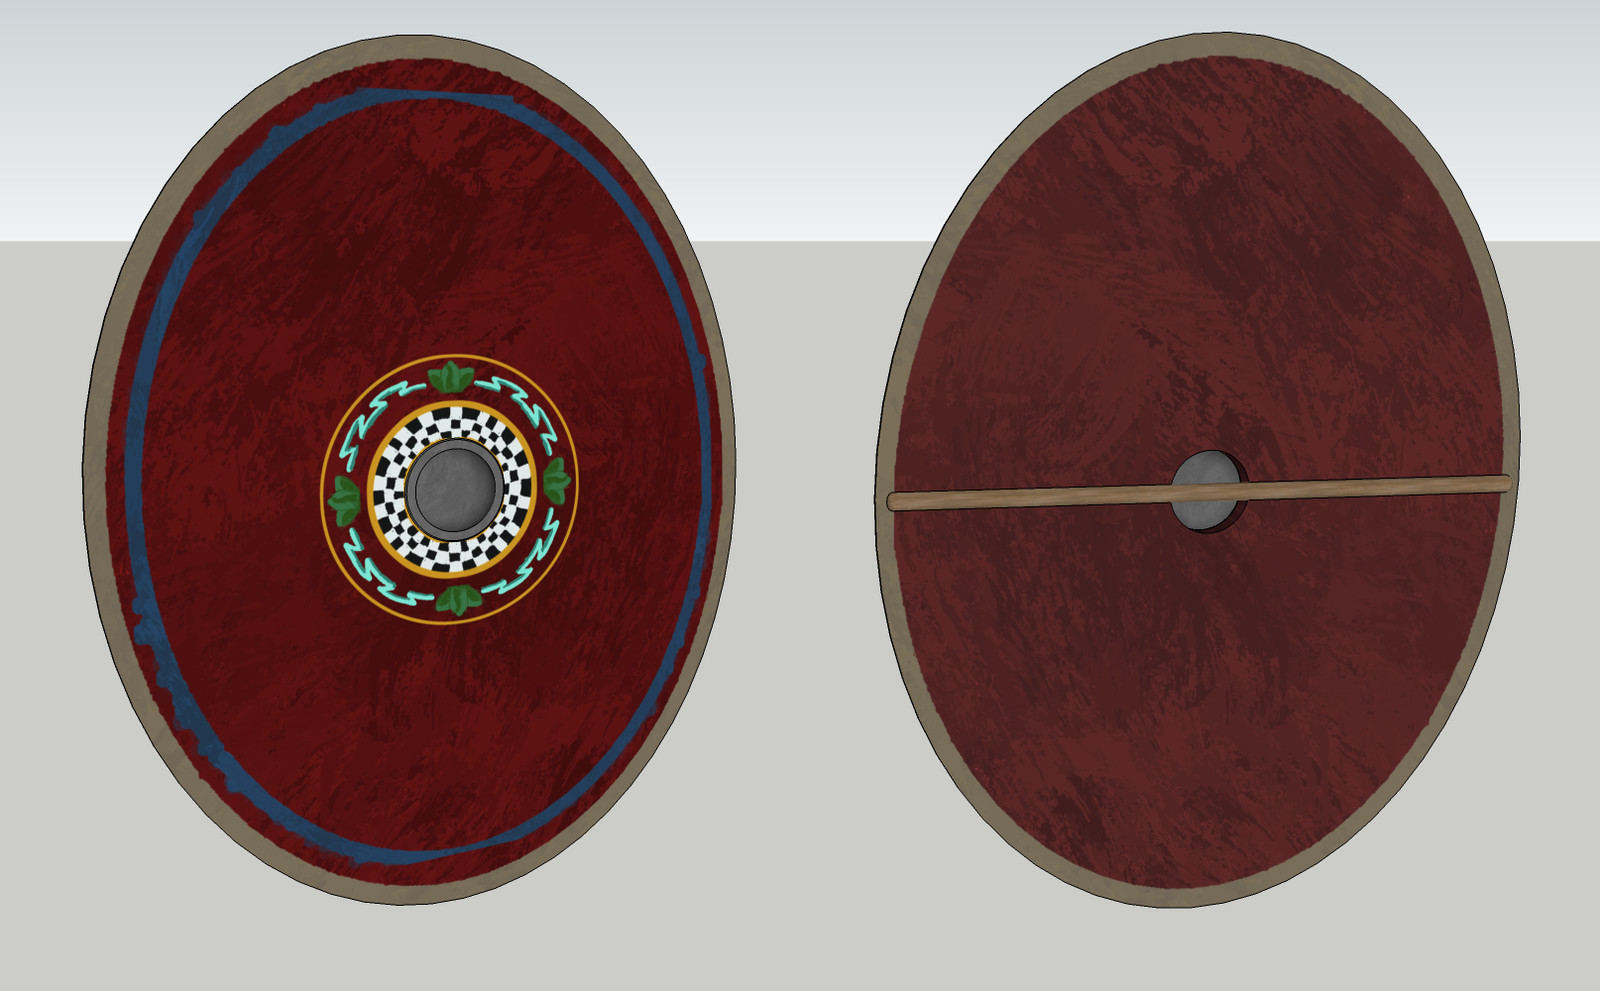 3d model of shield in SketchUp w/ rough texture hand-painted in Photoshop to paintover on model